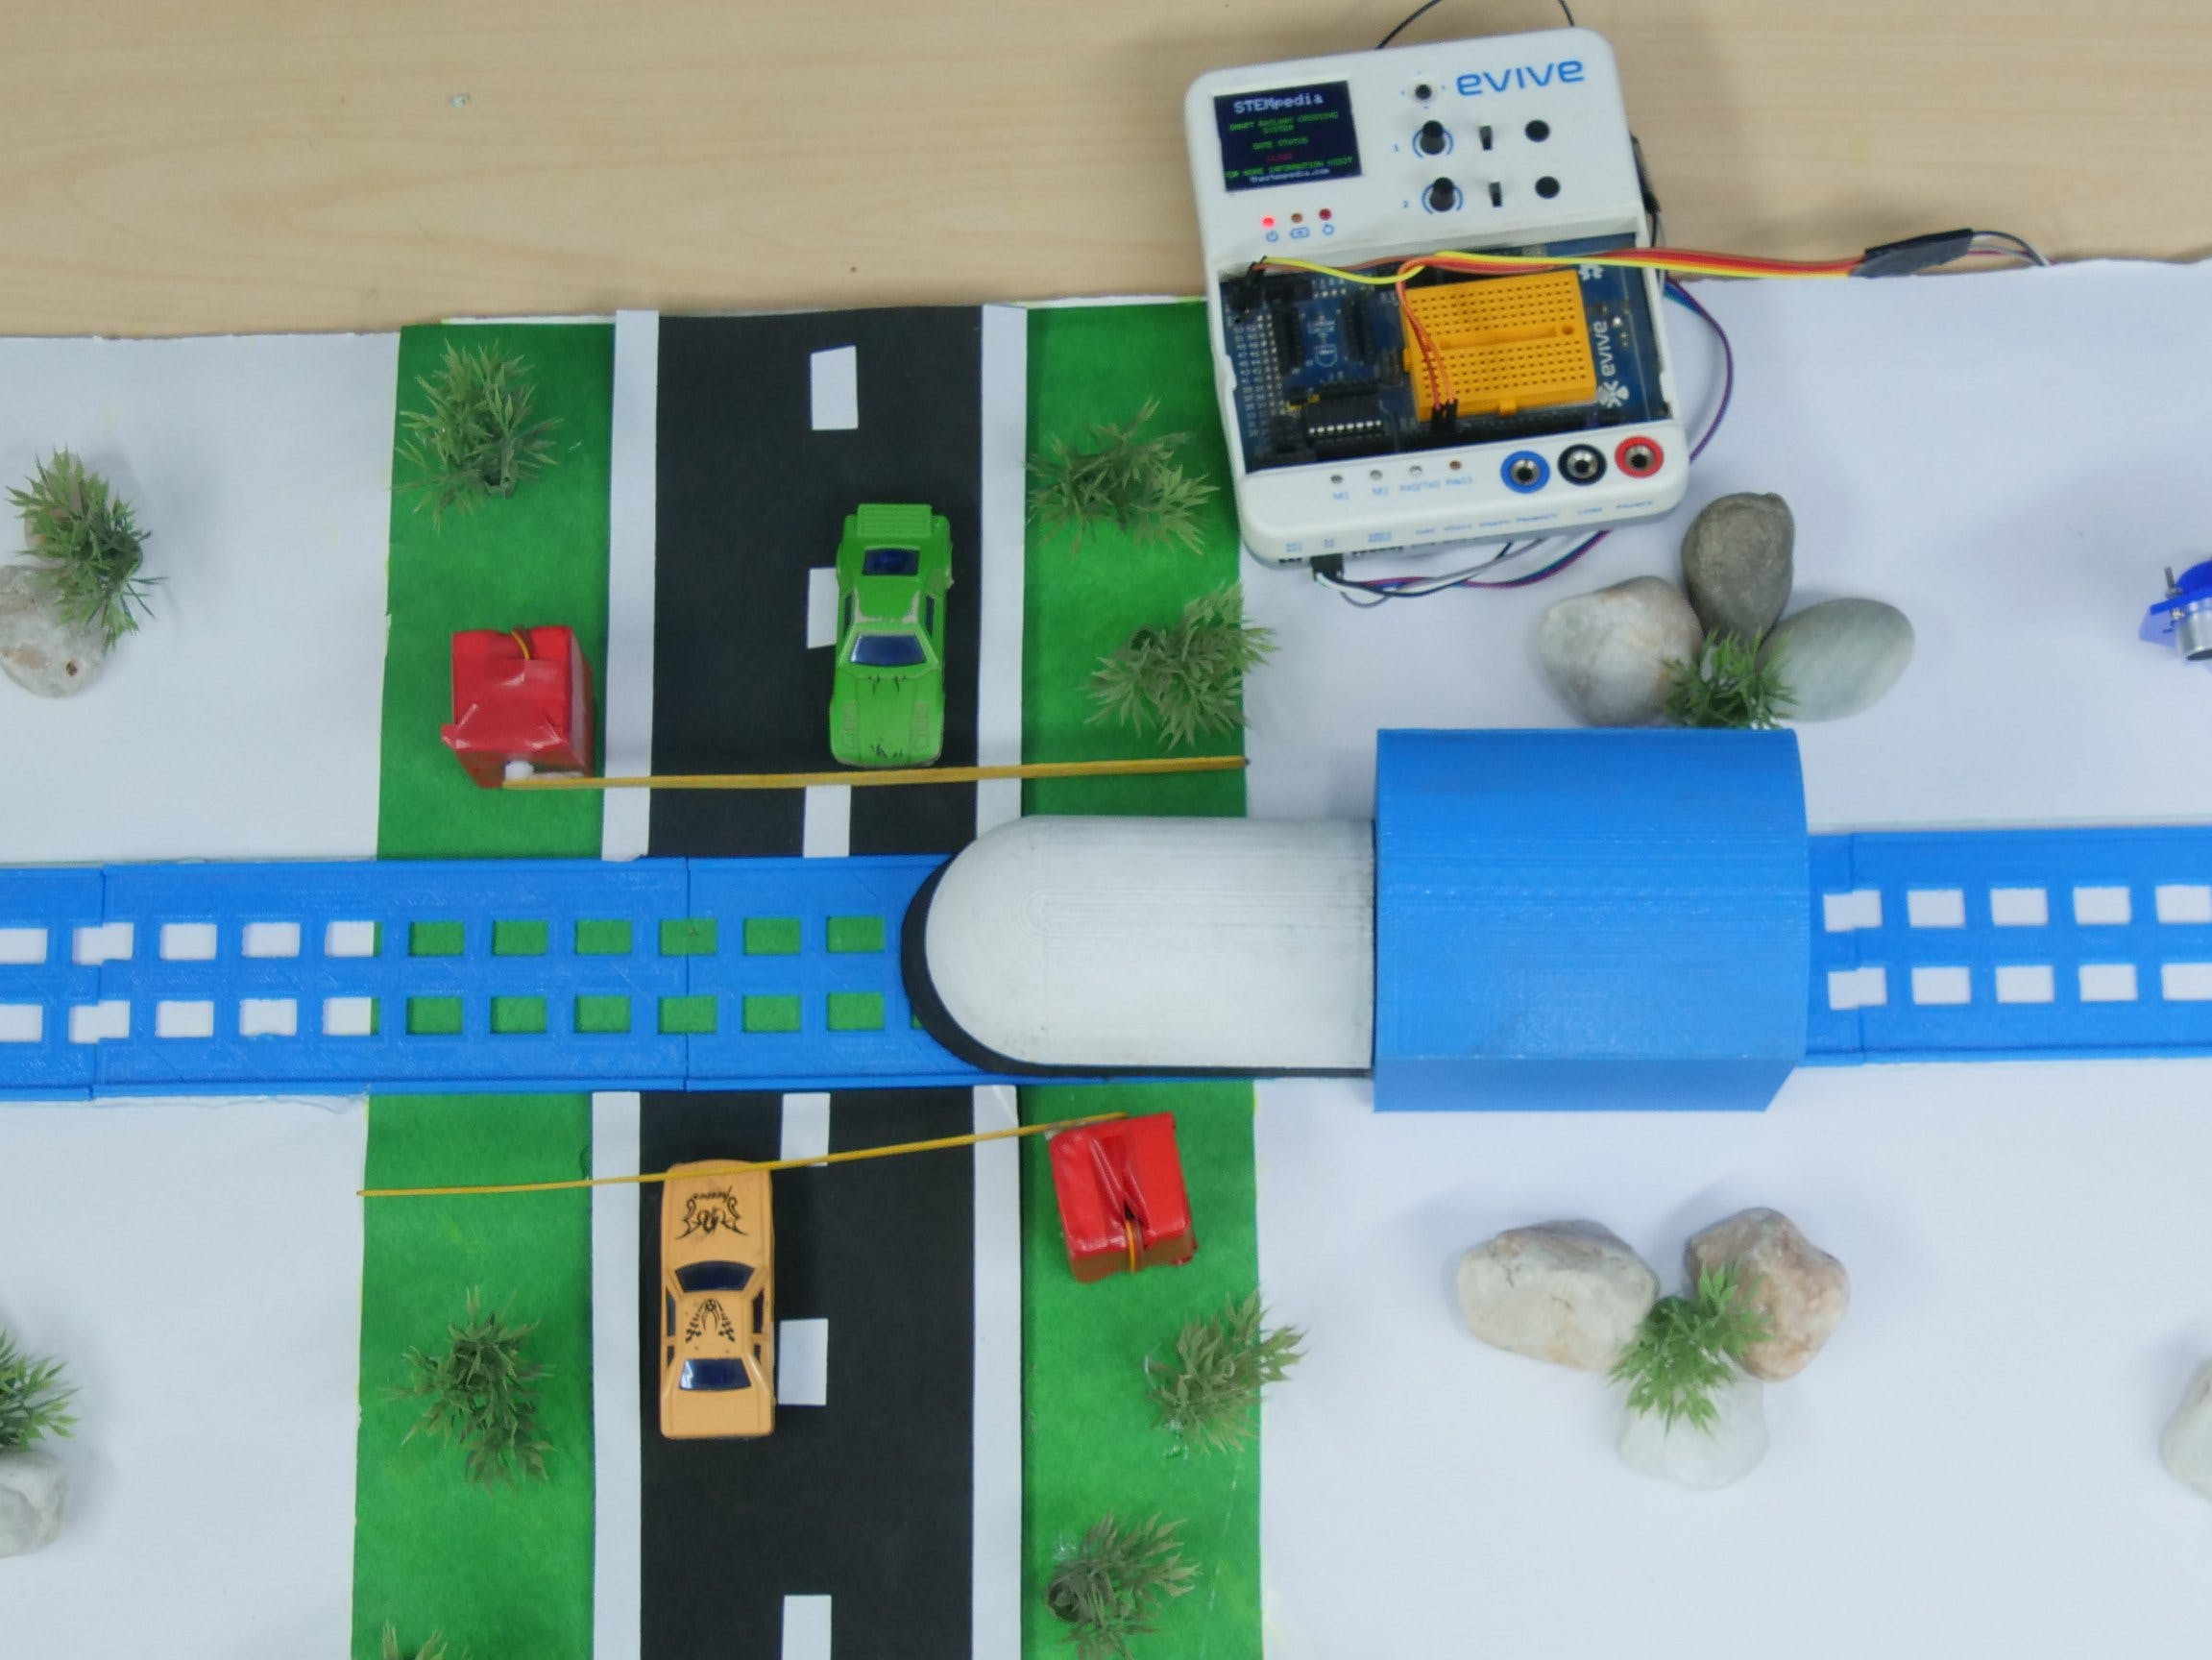 Automatic Railway Crossing System Using Arduino Based Emb...